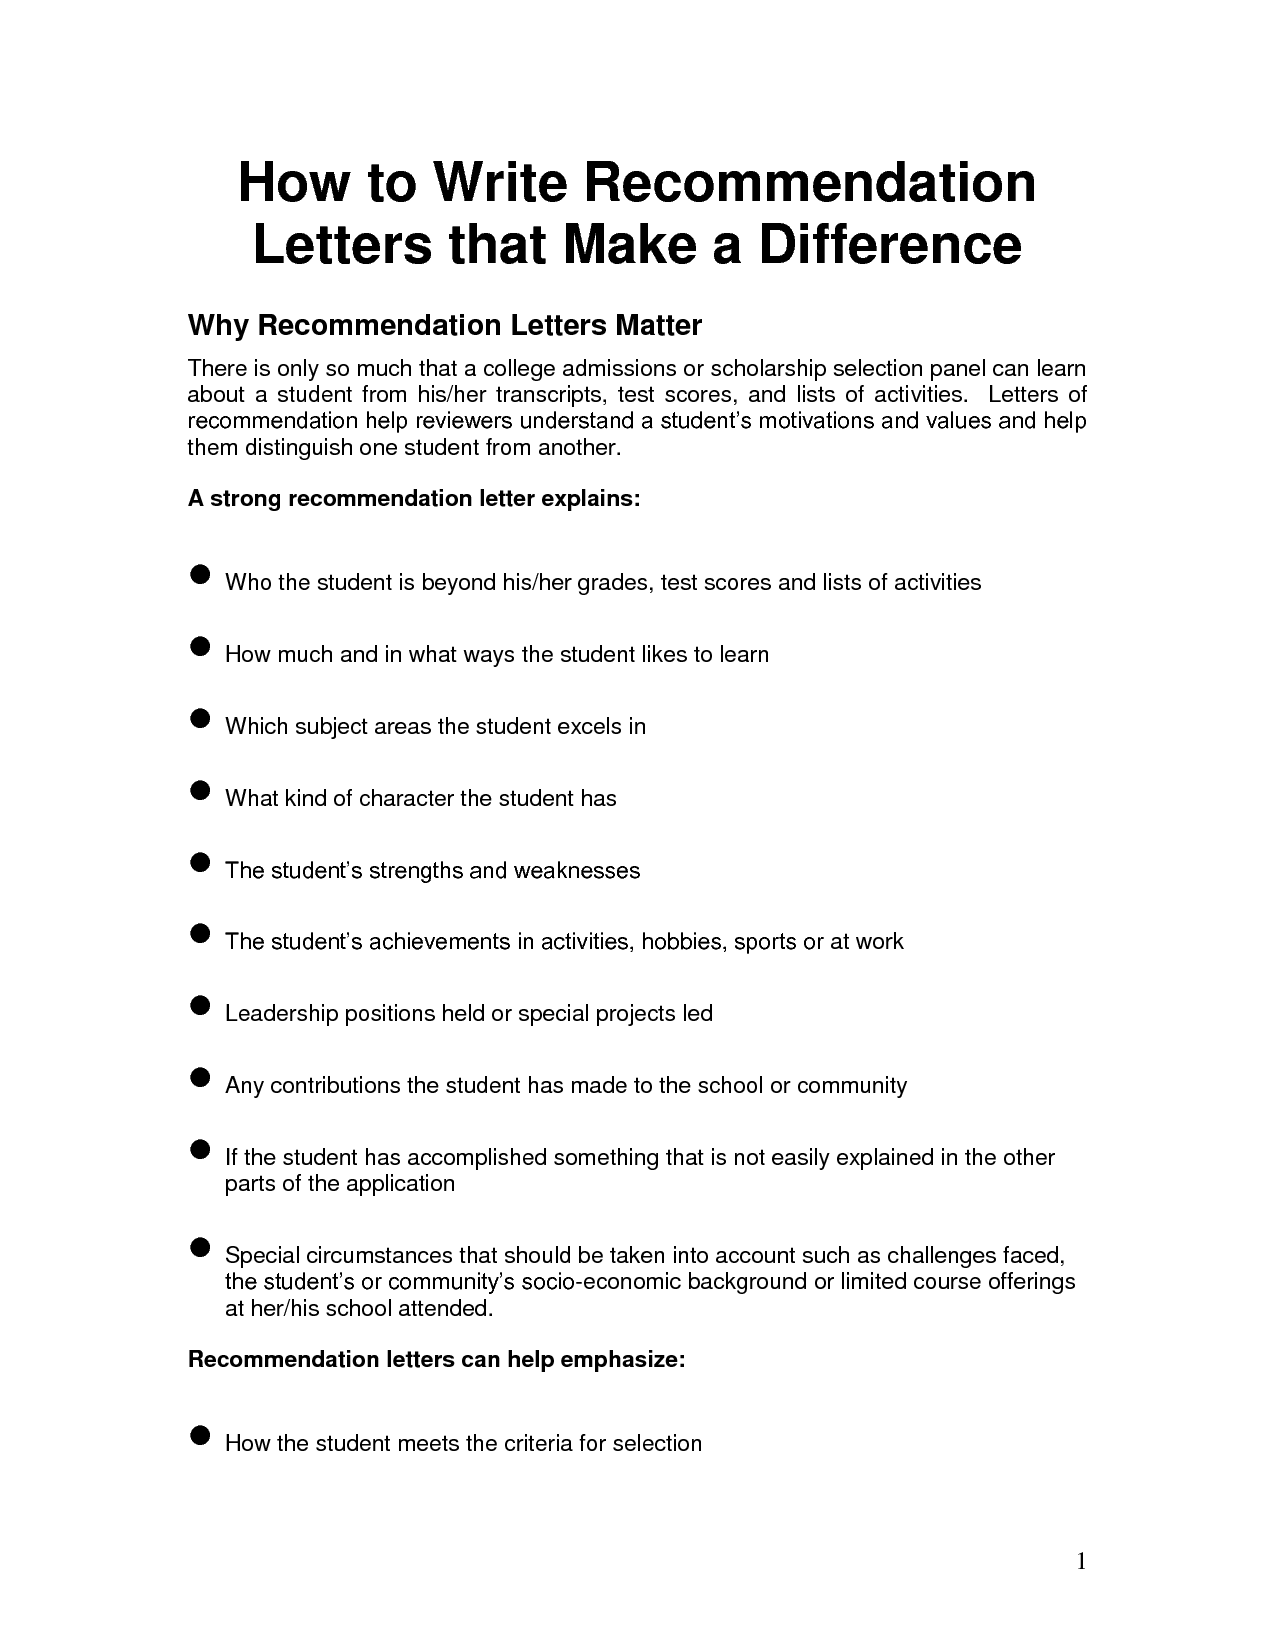 how to write a recommendation letter bbq grill recipes | Court